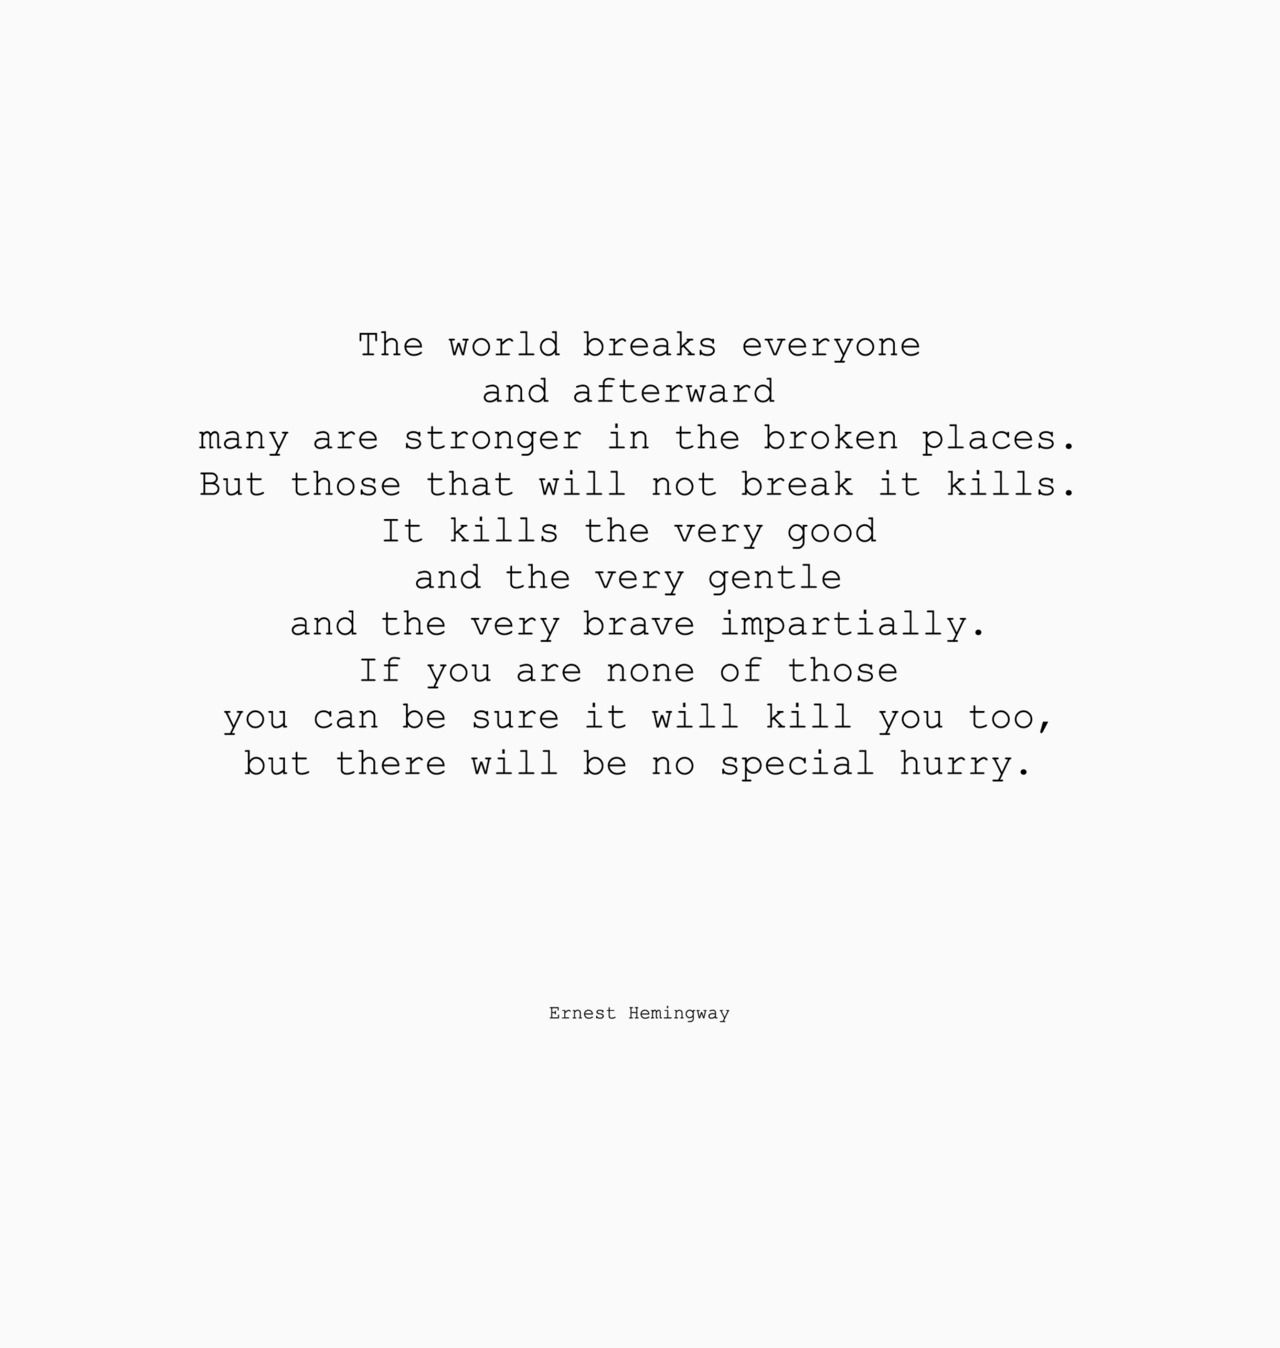 the world breaks everyone and afterward many are stronger in the kills ernest arms ernest ernest hemingway quotes broken earnest hemingway quotes hemingway amazing arms hemingway hemingway farewell hemingway poetry